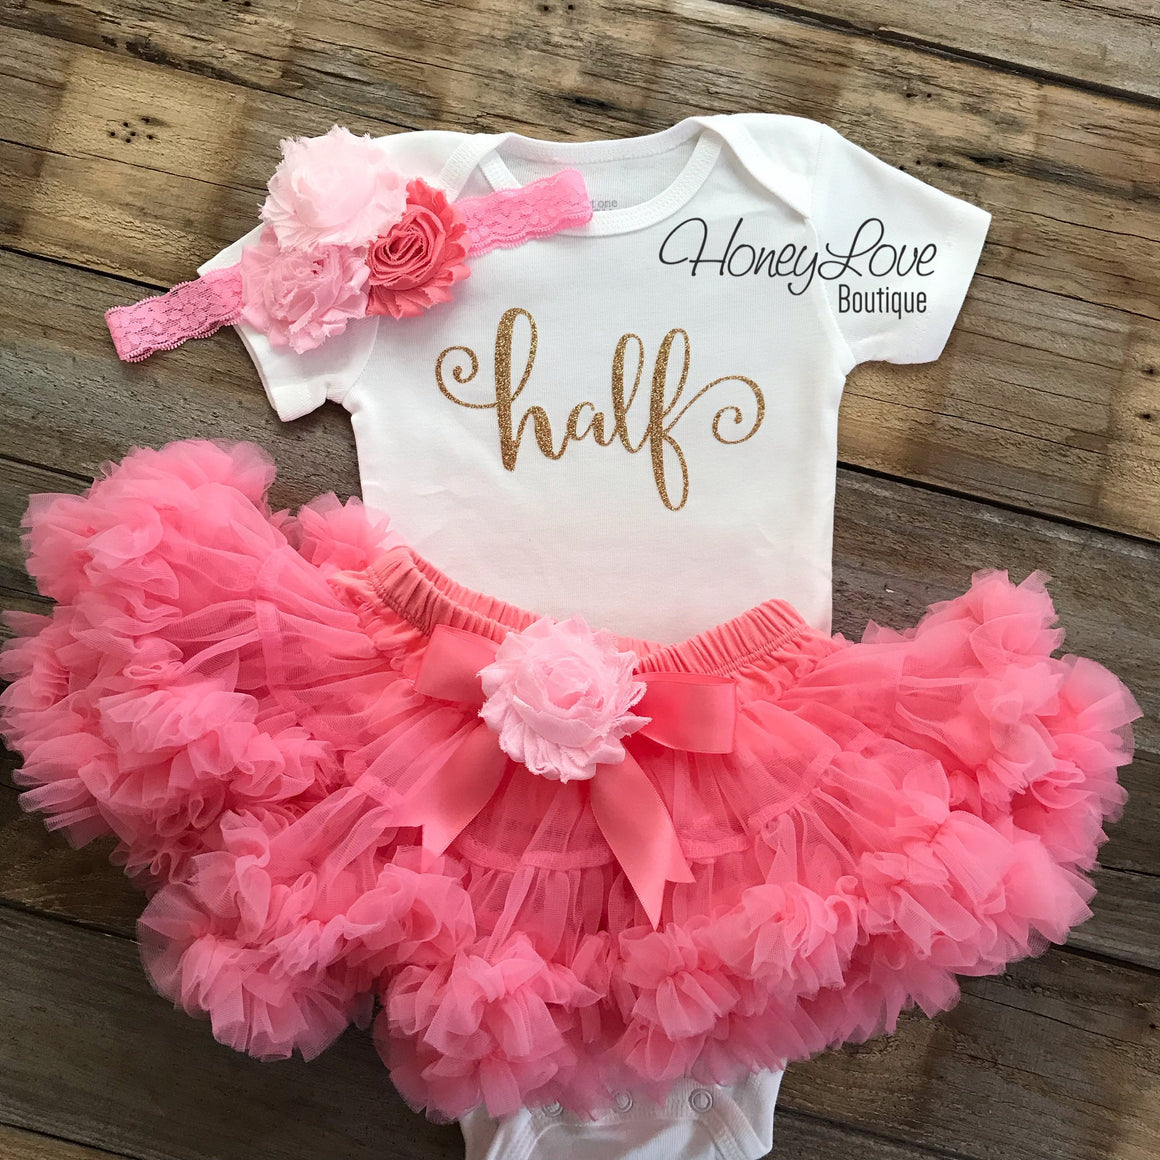 Half Birthday Outfit - Coral Pink and Gold Glitter - embellished pettiskirt - HoneyLoveBoutique